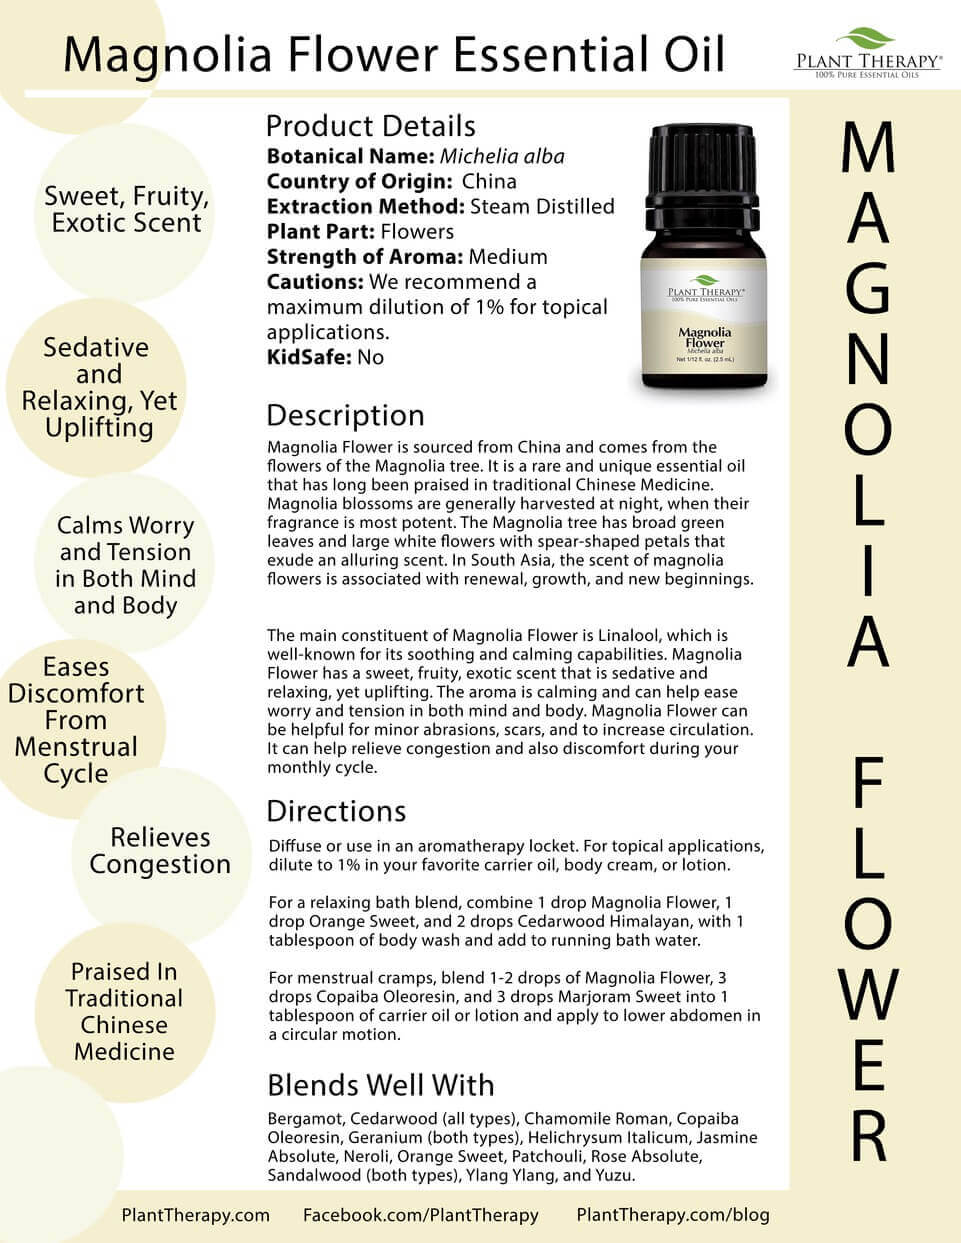 Essential Oil Of The Month Magnolia Flower